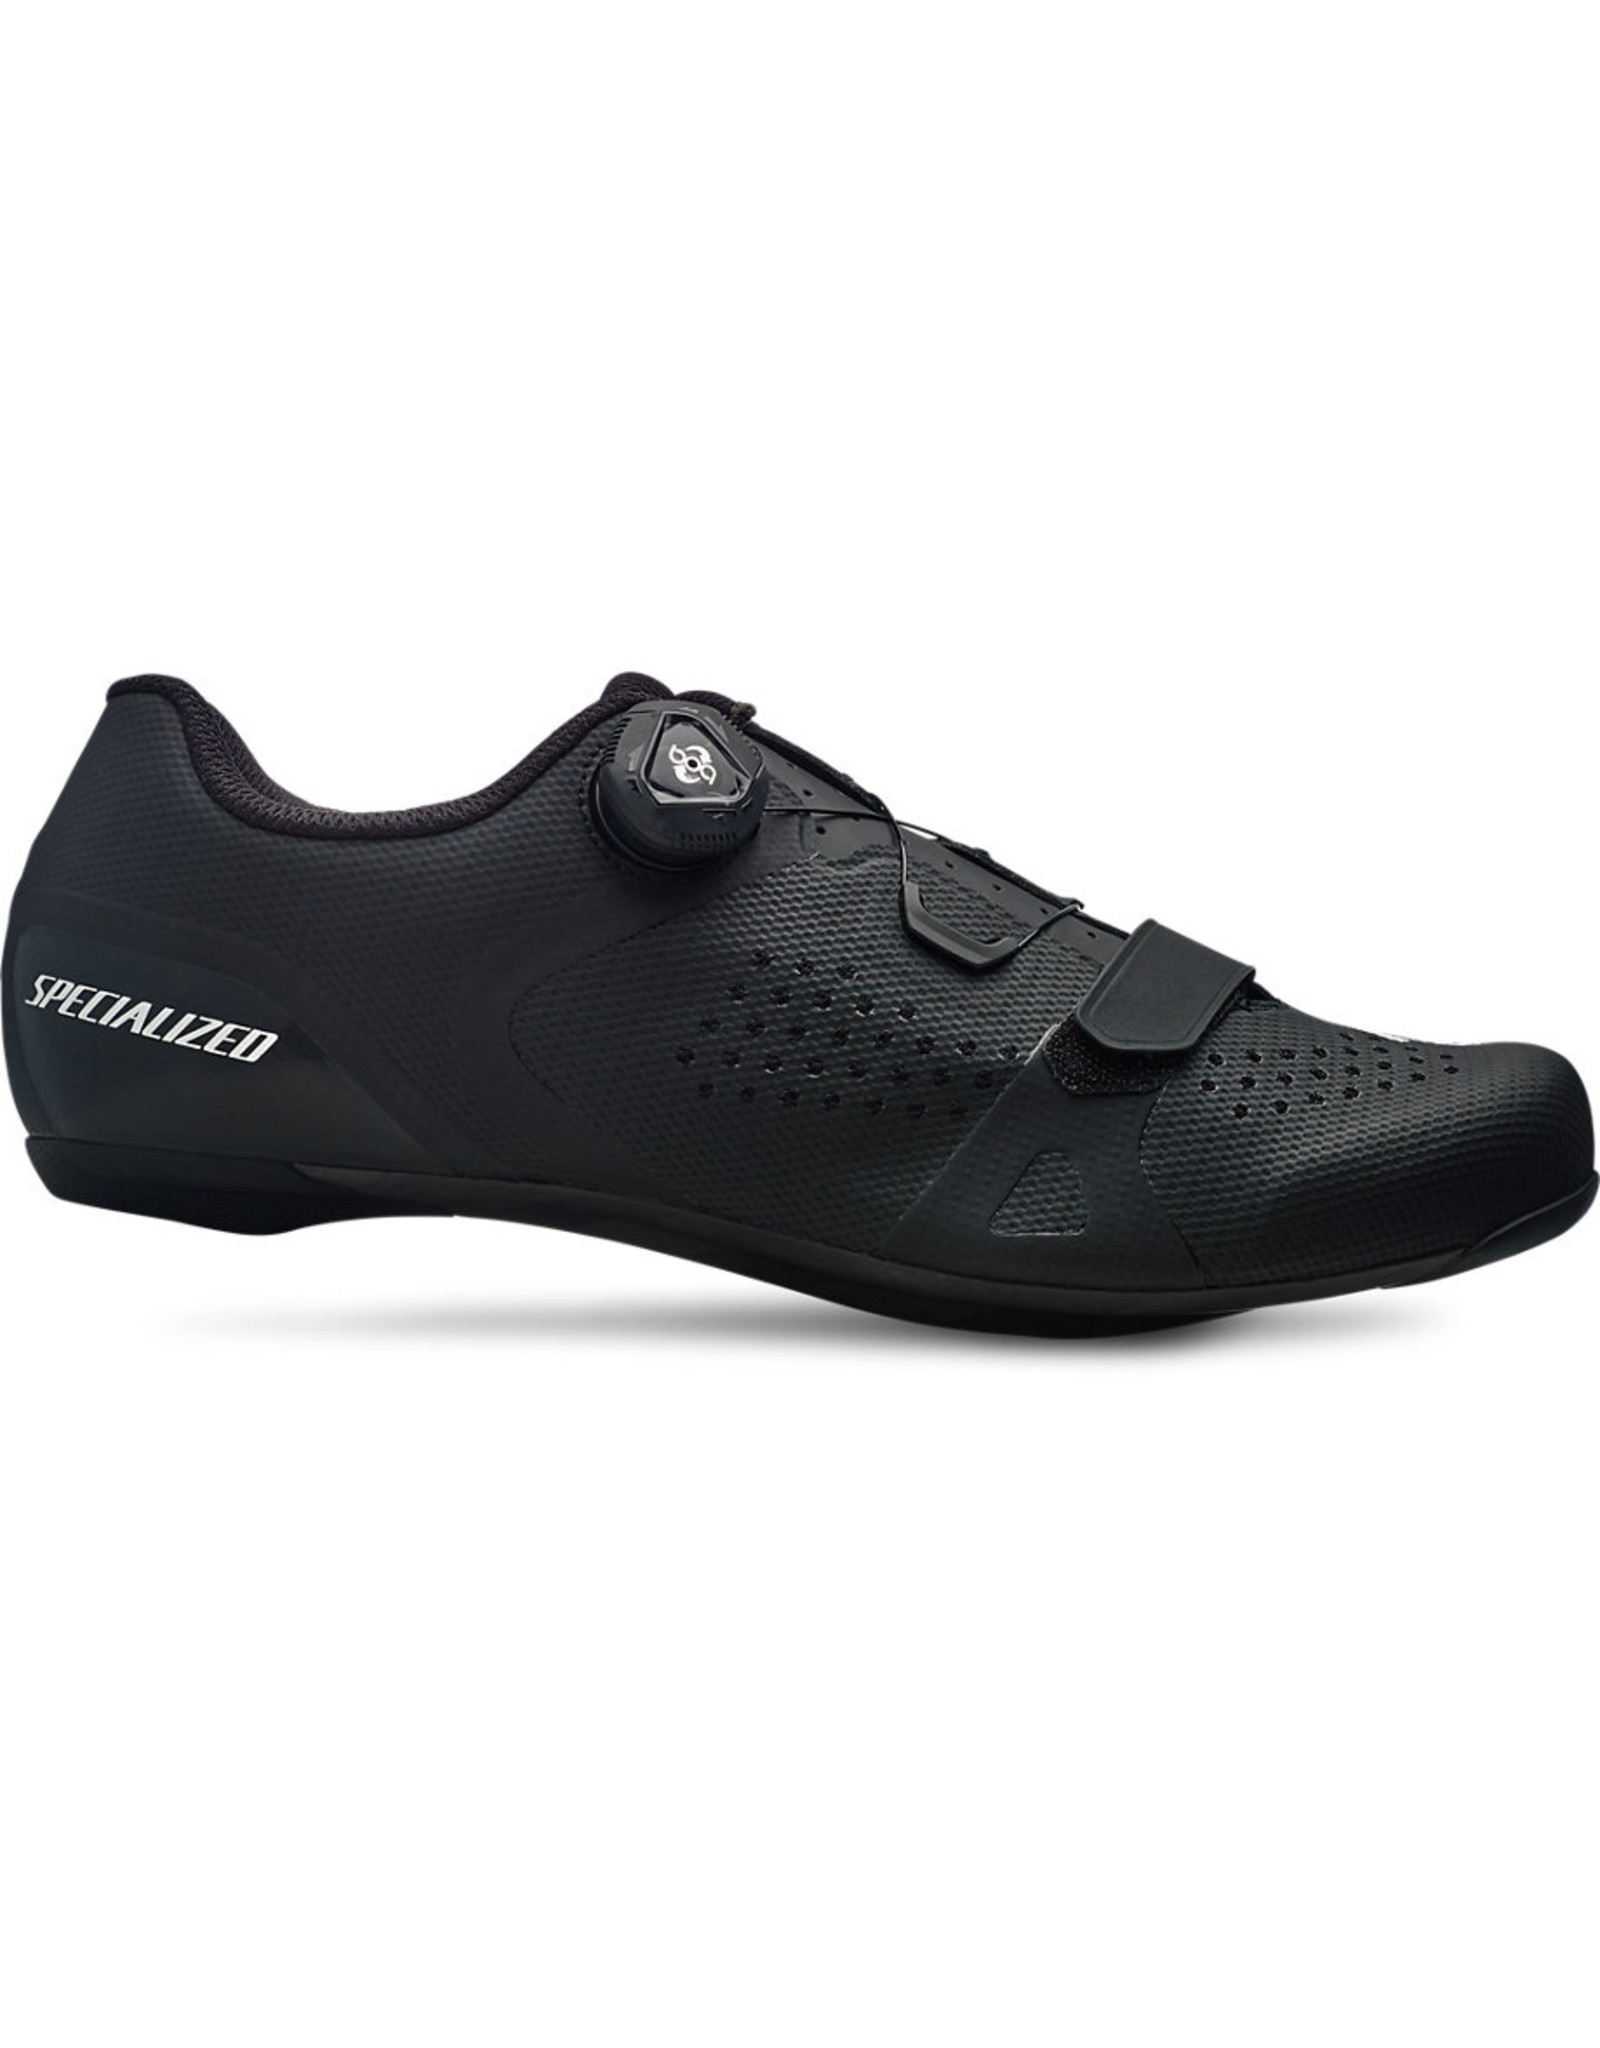 Specialized TORCH 2.0 RD SHOE BLK